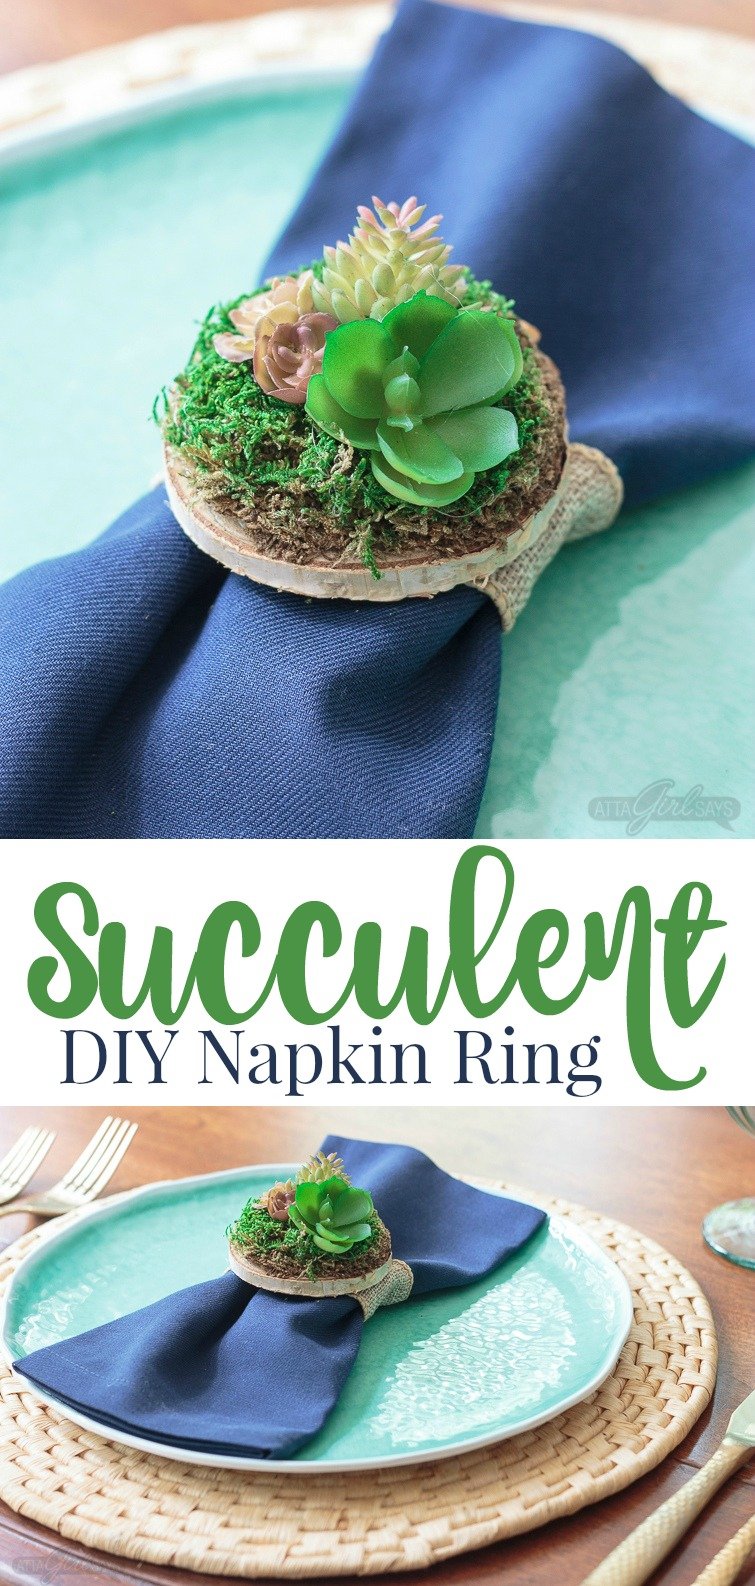 A collage image titled Succulent DIY Napkin Ring showing a minature succulent atop a mossy wooden disk, used as a napkin ring.